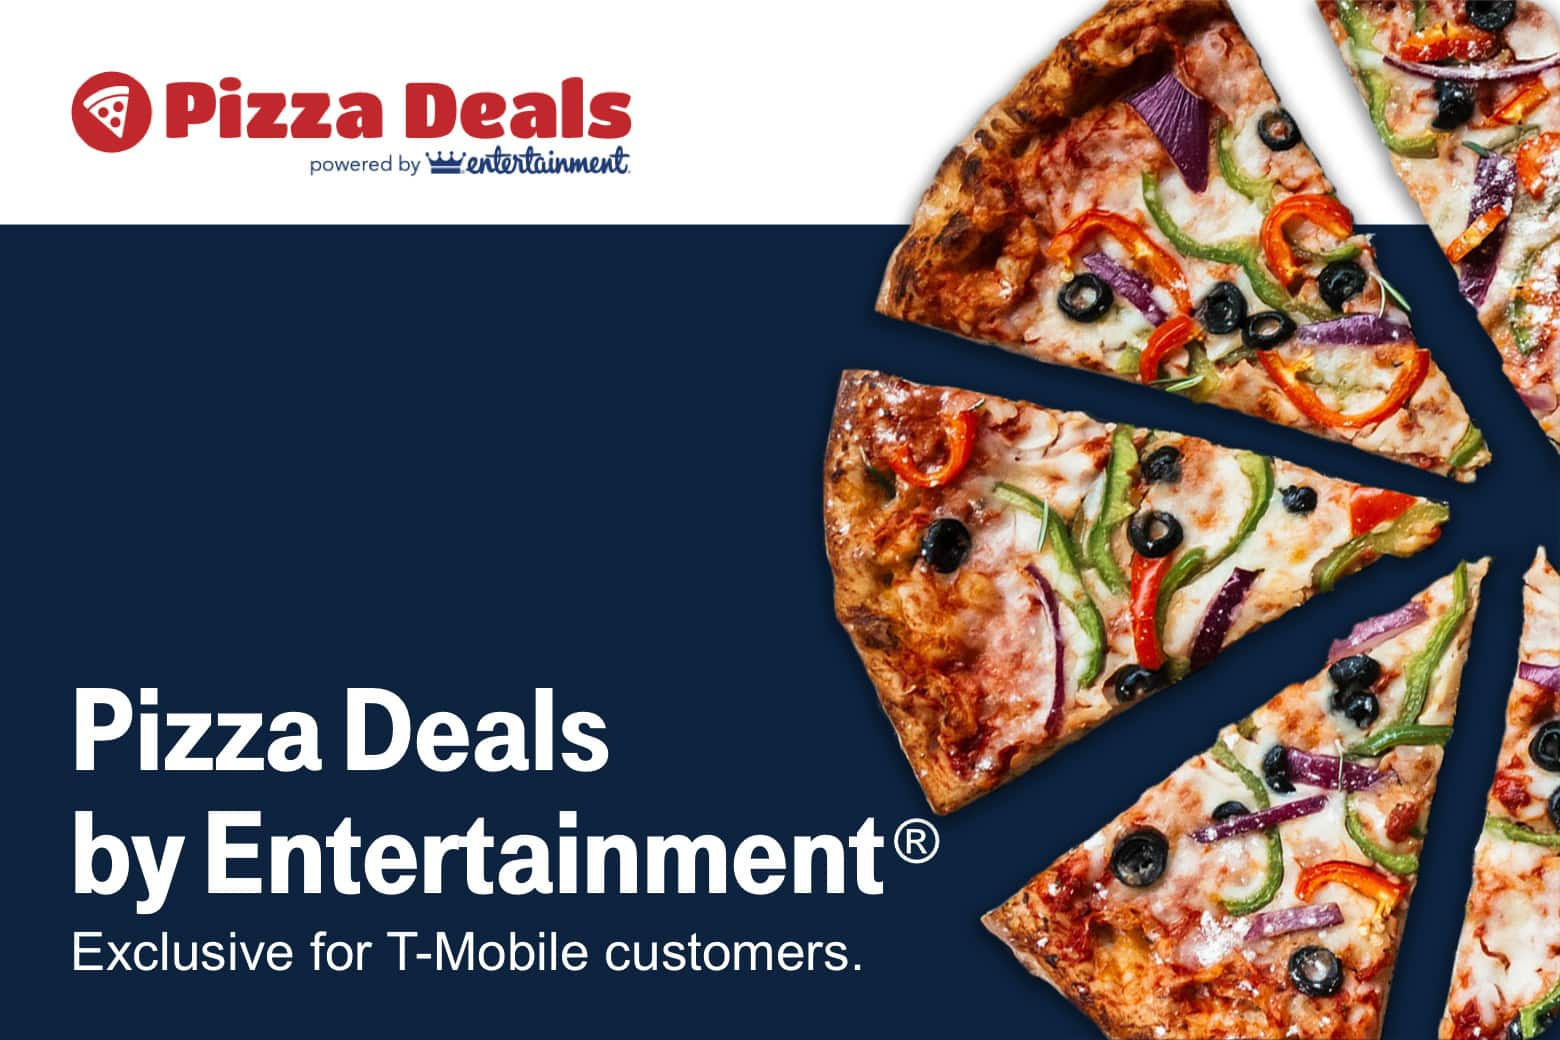 T-Mobile Customers (01/08): Pizza Deals, 10 free 4x6 Prints